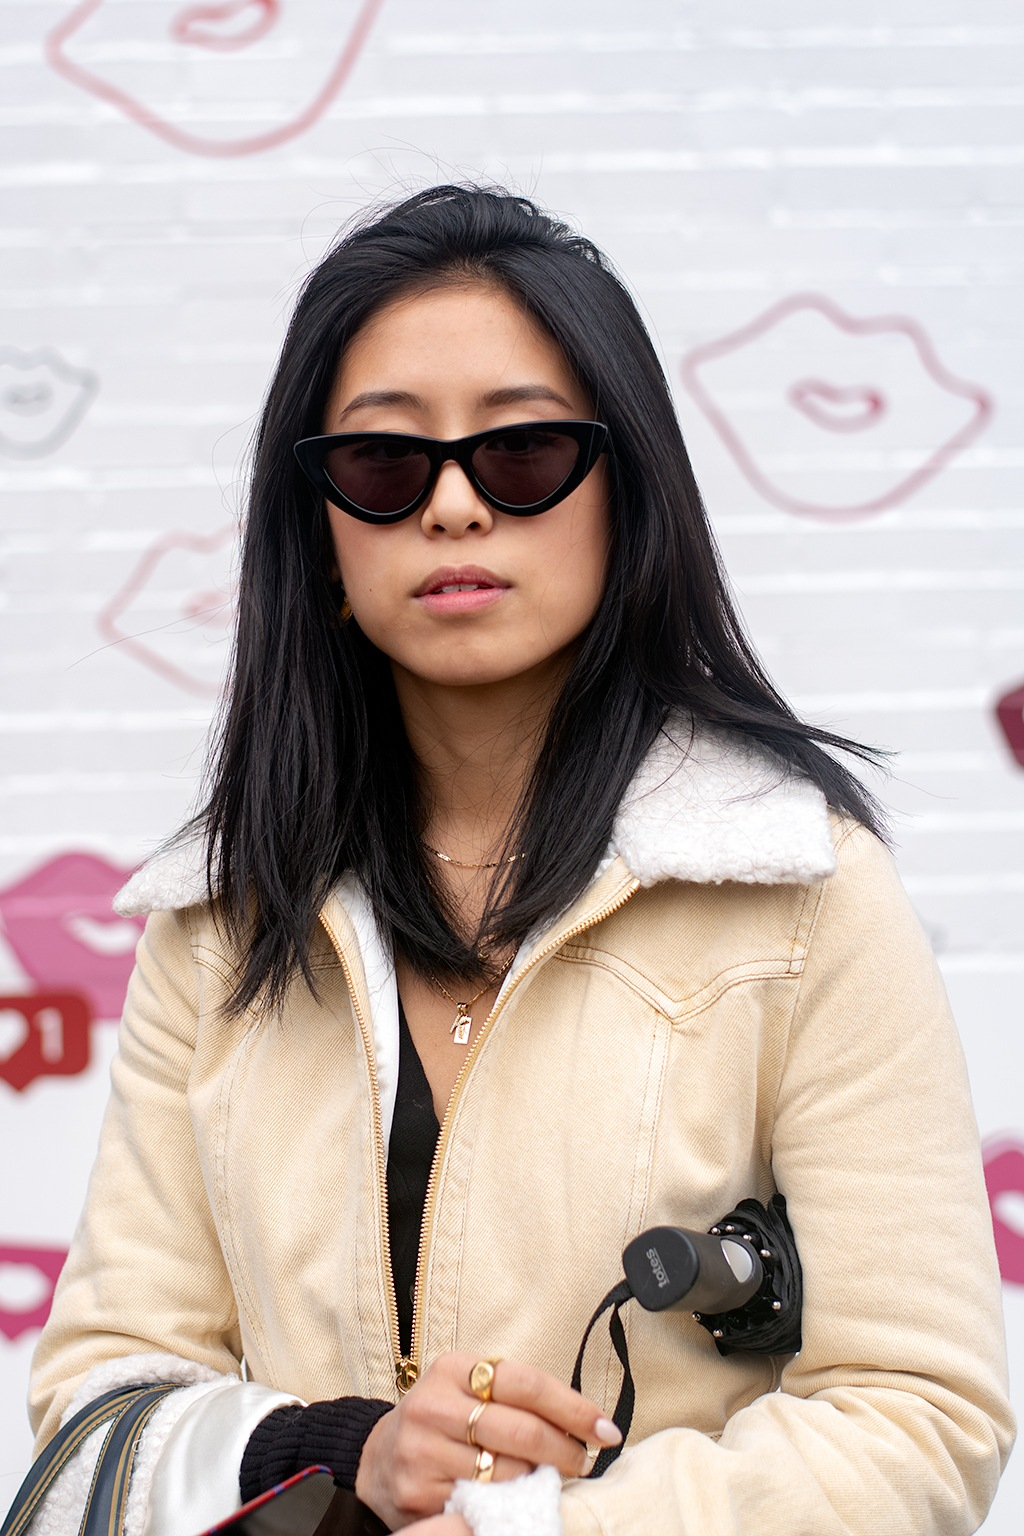 2019 hair colour trends: Street style shot of a woman with shoulder length jet black hair, wearing black retro cat eye sunglasses and a beige jacket